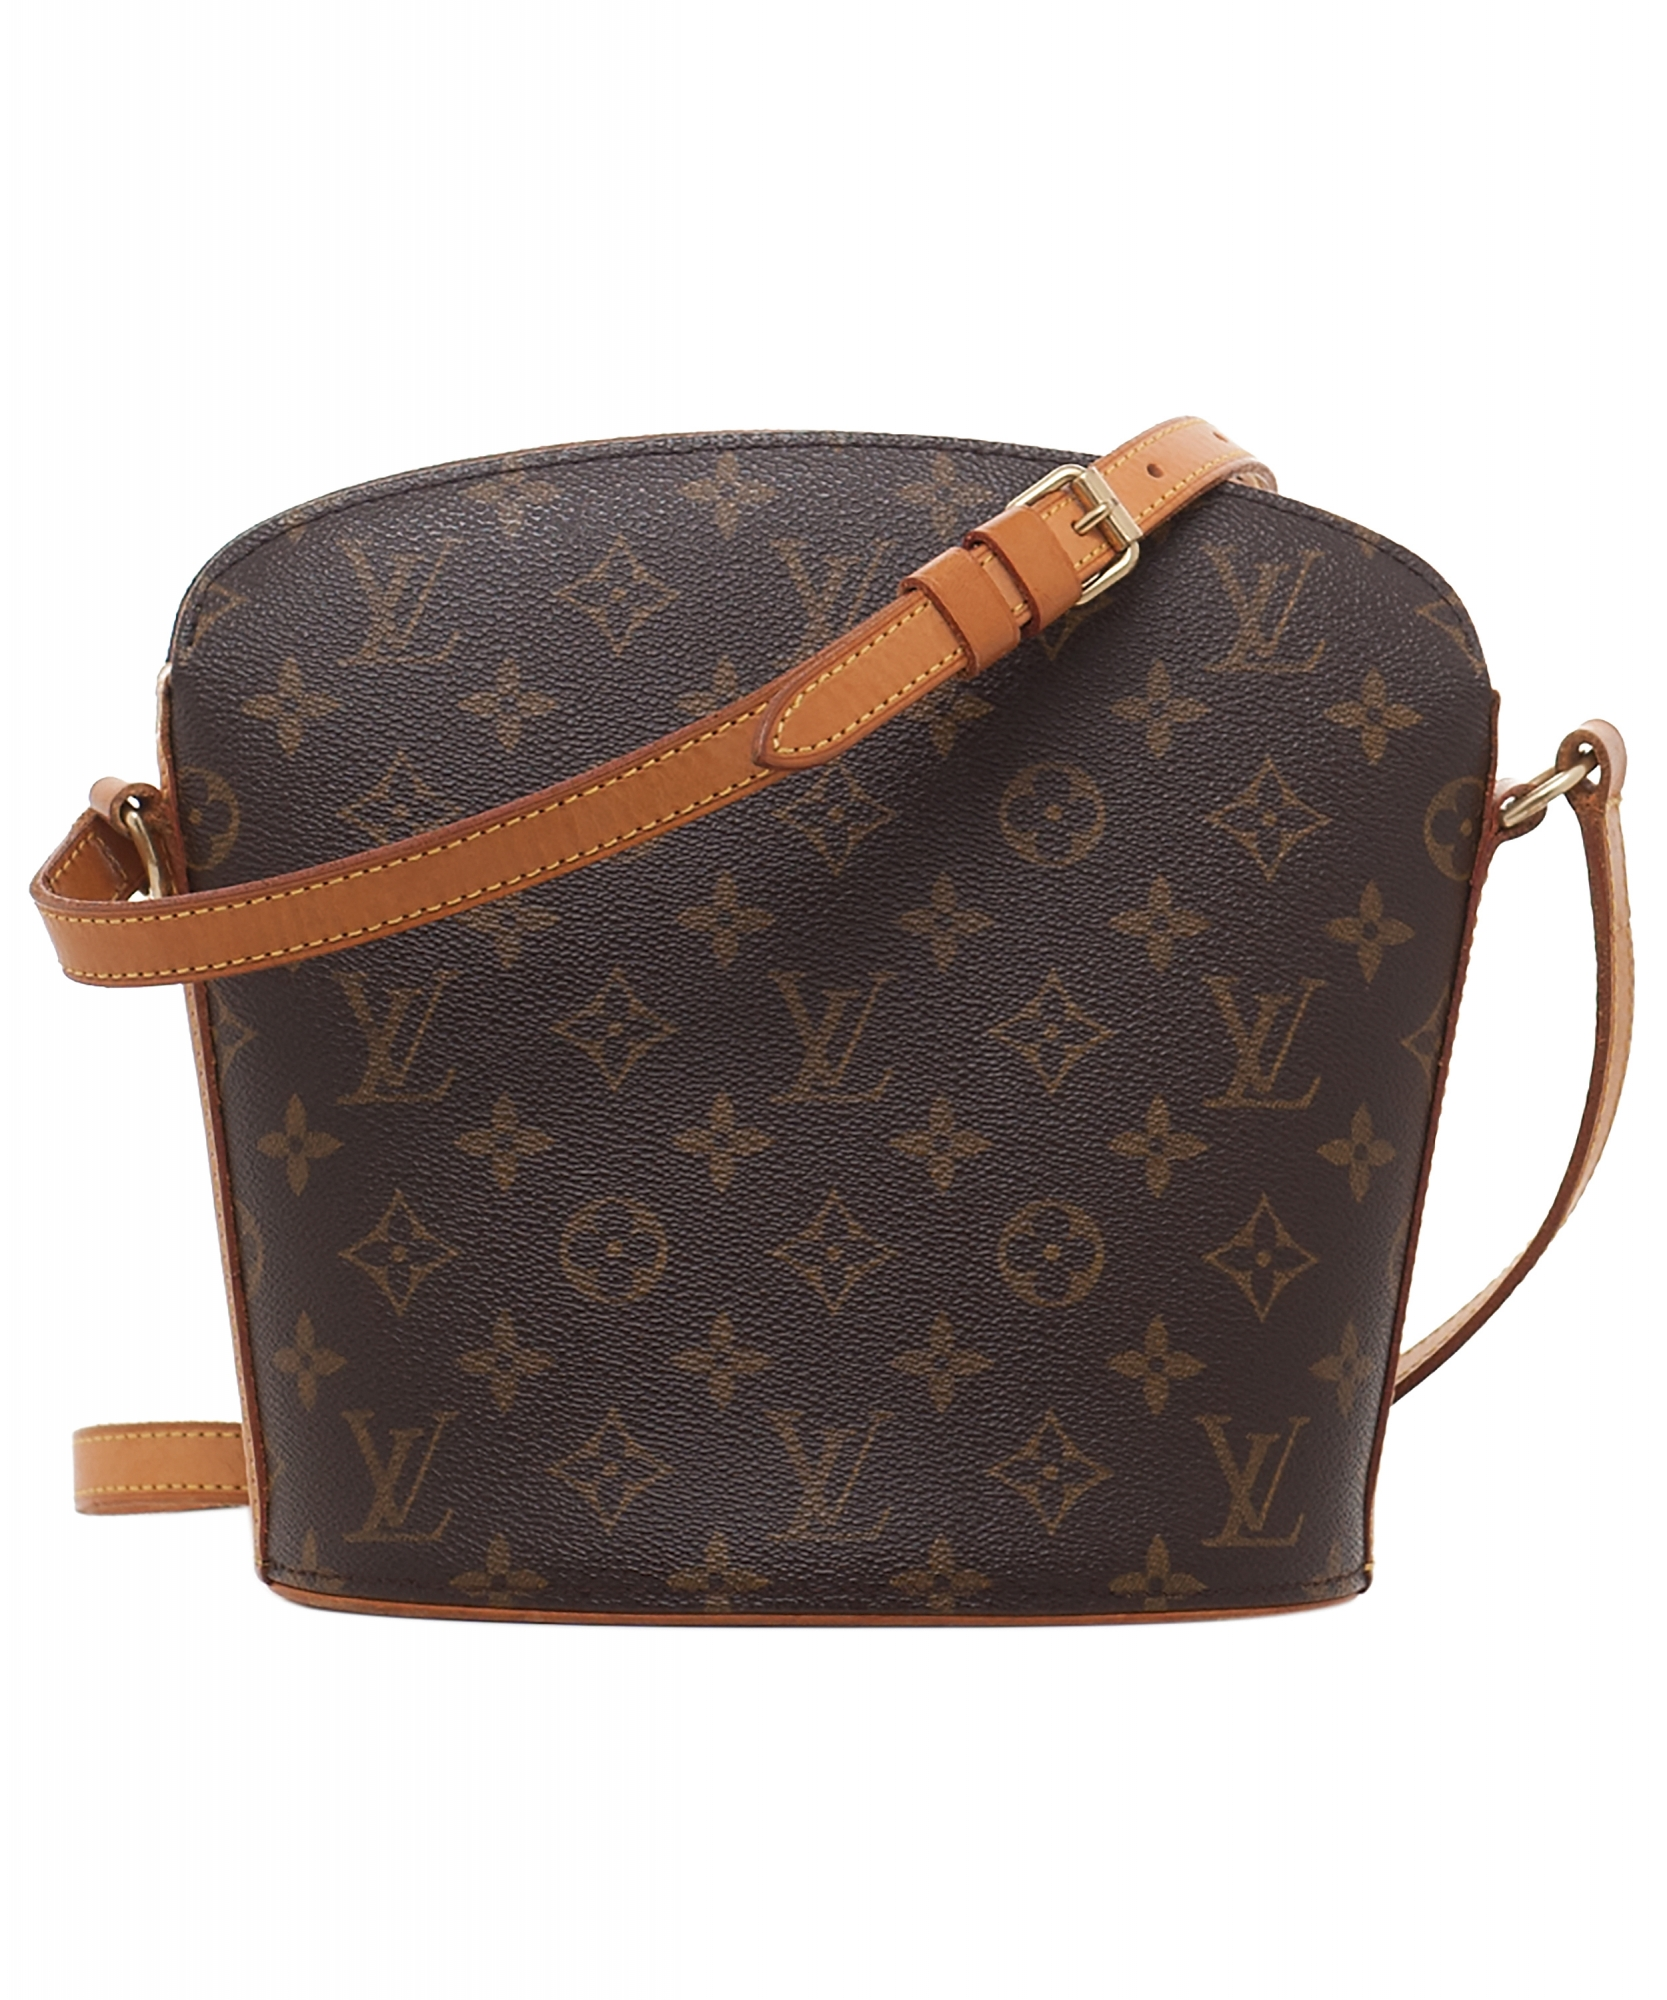 7a6ac615fb08 Louis Vuitton Drouot Monogram Crossbody Bag